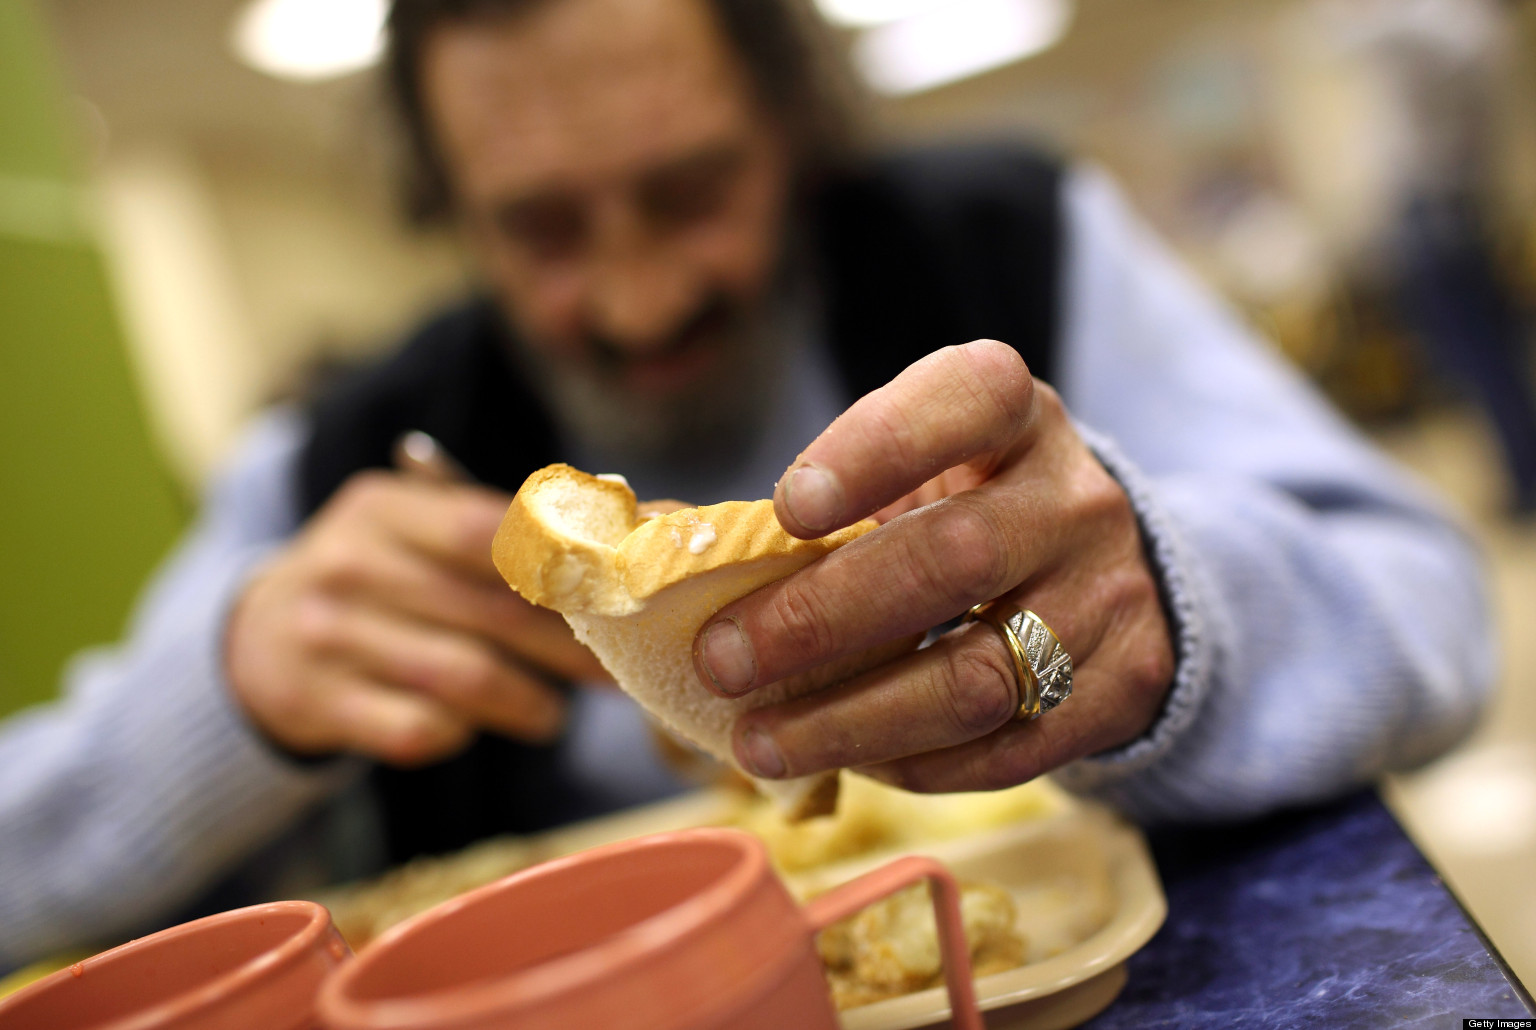 soup kitchen meals too fattening not nutritious says new study